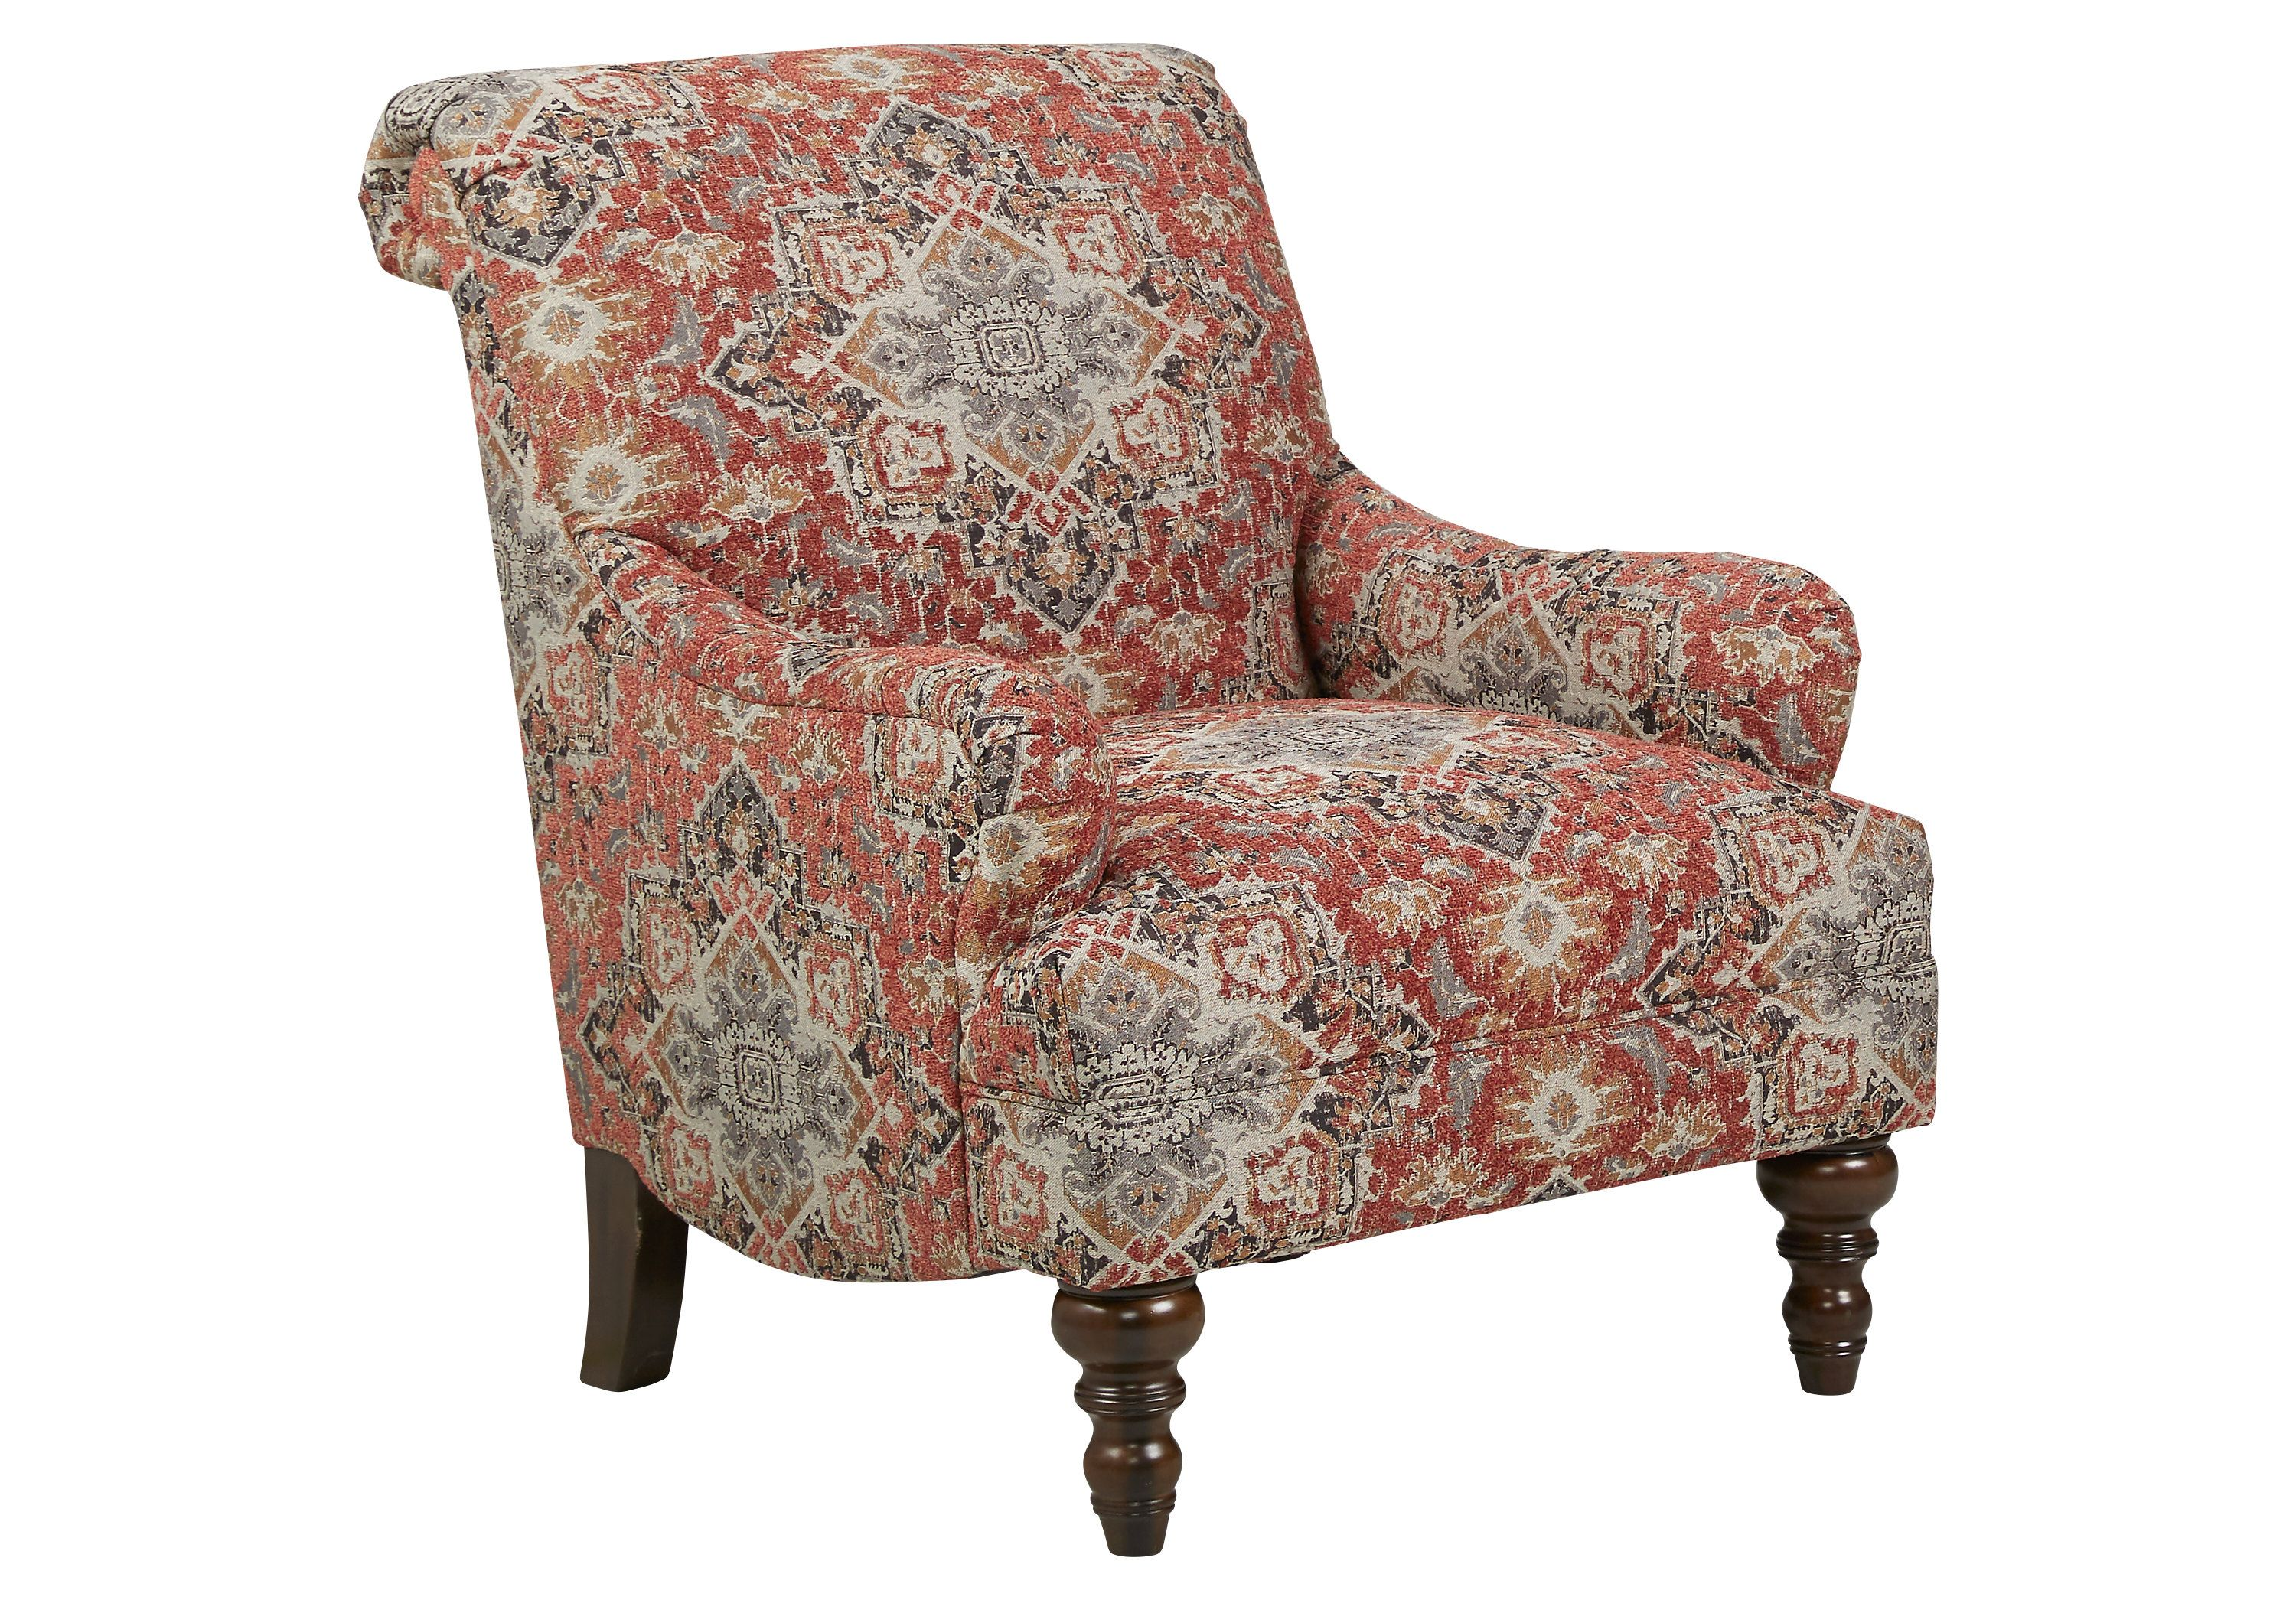 Sensational Cindy Crawford Home Bali Breeze Accent Chair For The Home Pabps2019 Chair Design Images Pabps2019Com